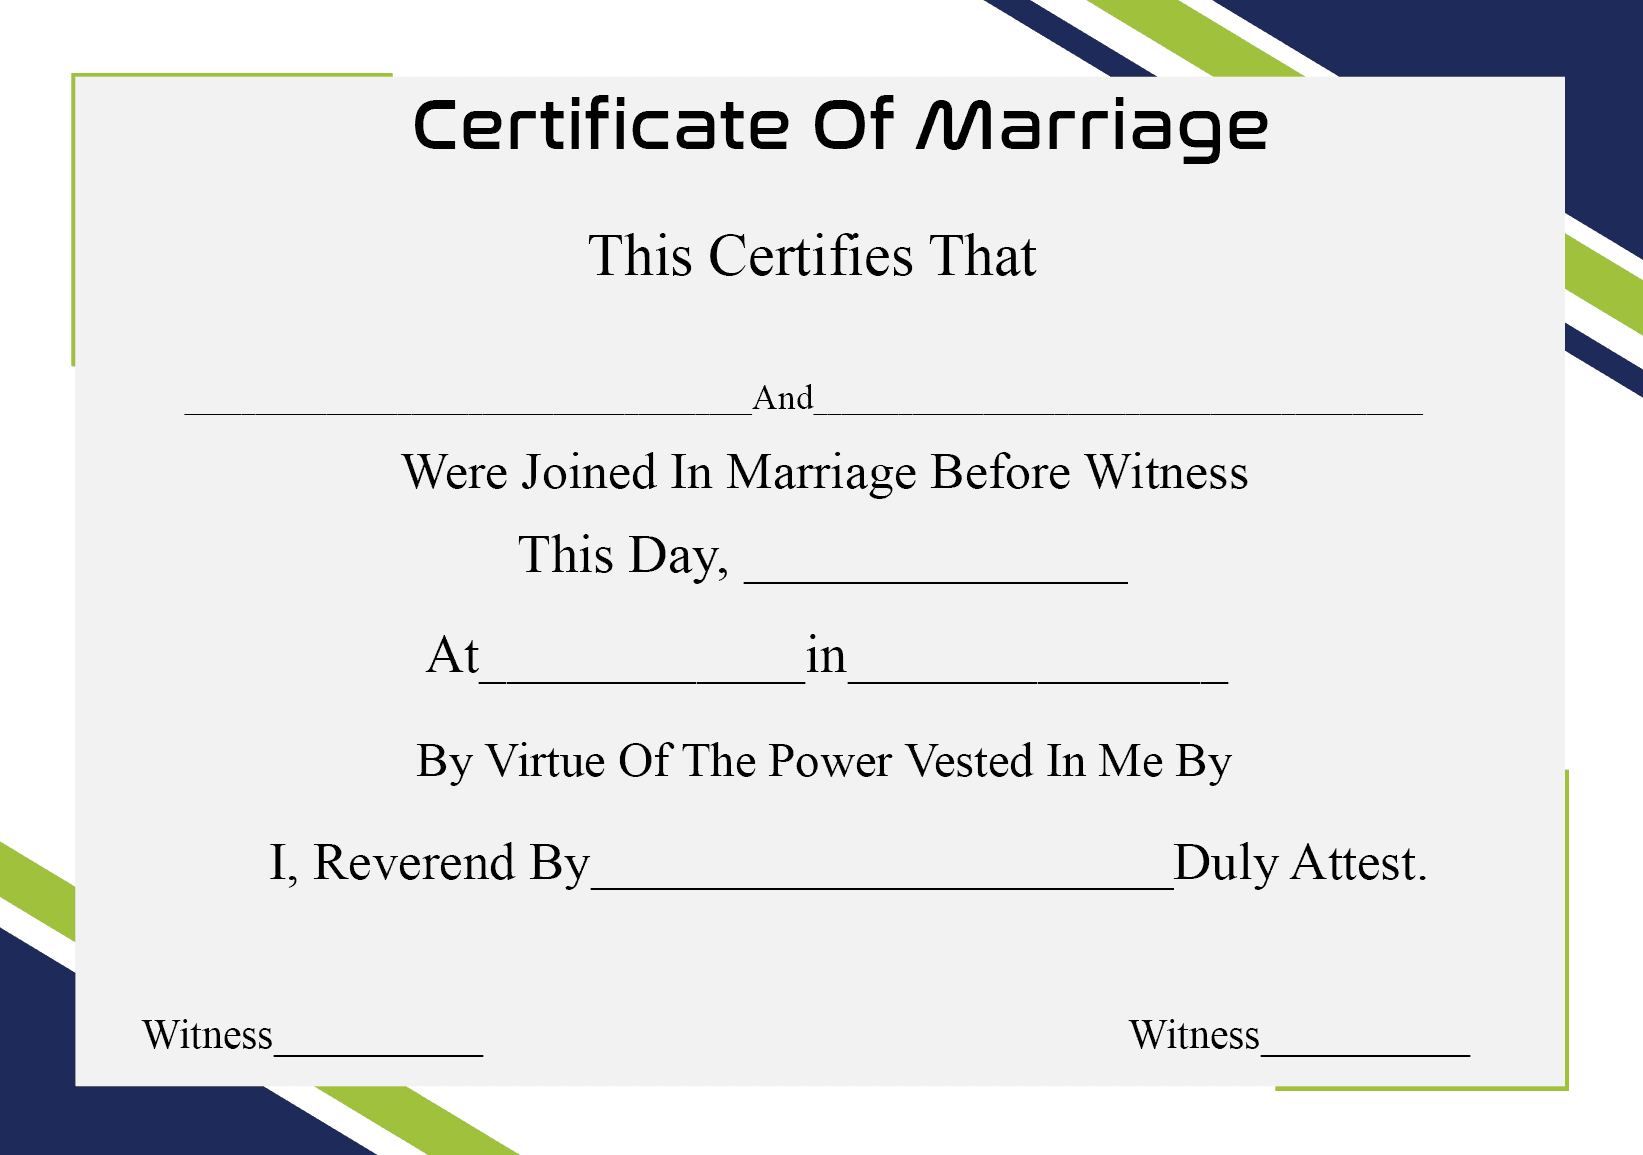 Certificate Of Marriage Sample